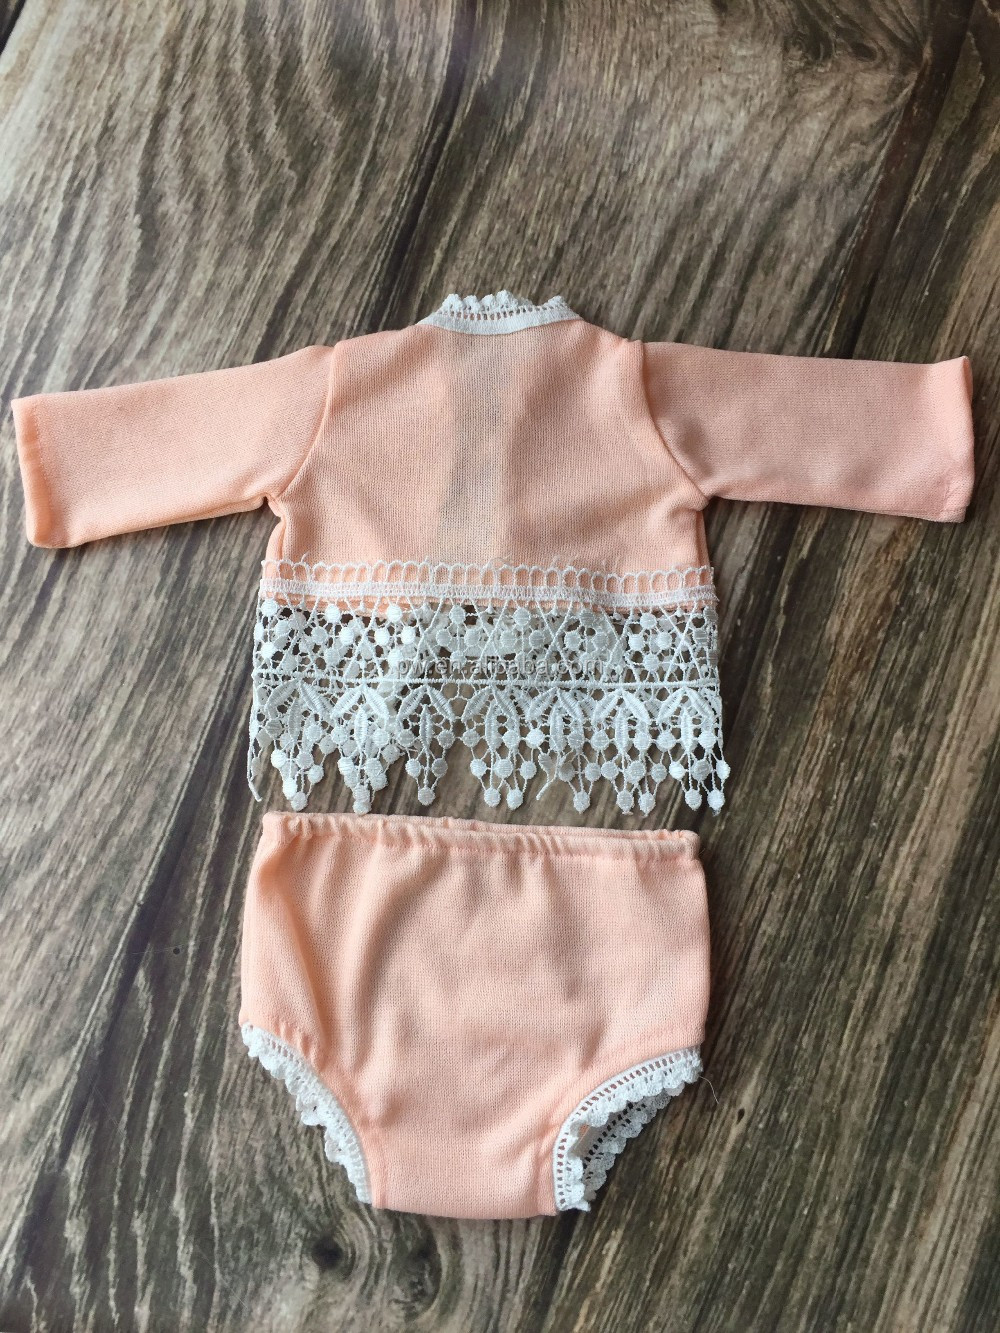 Knitted Baby Clothes Sewing Rompe Newborn Overall Handmade Knitted ...